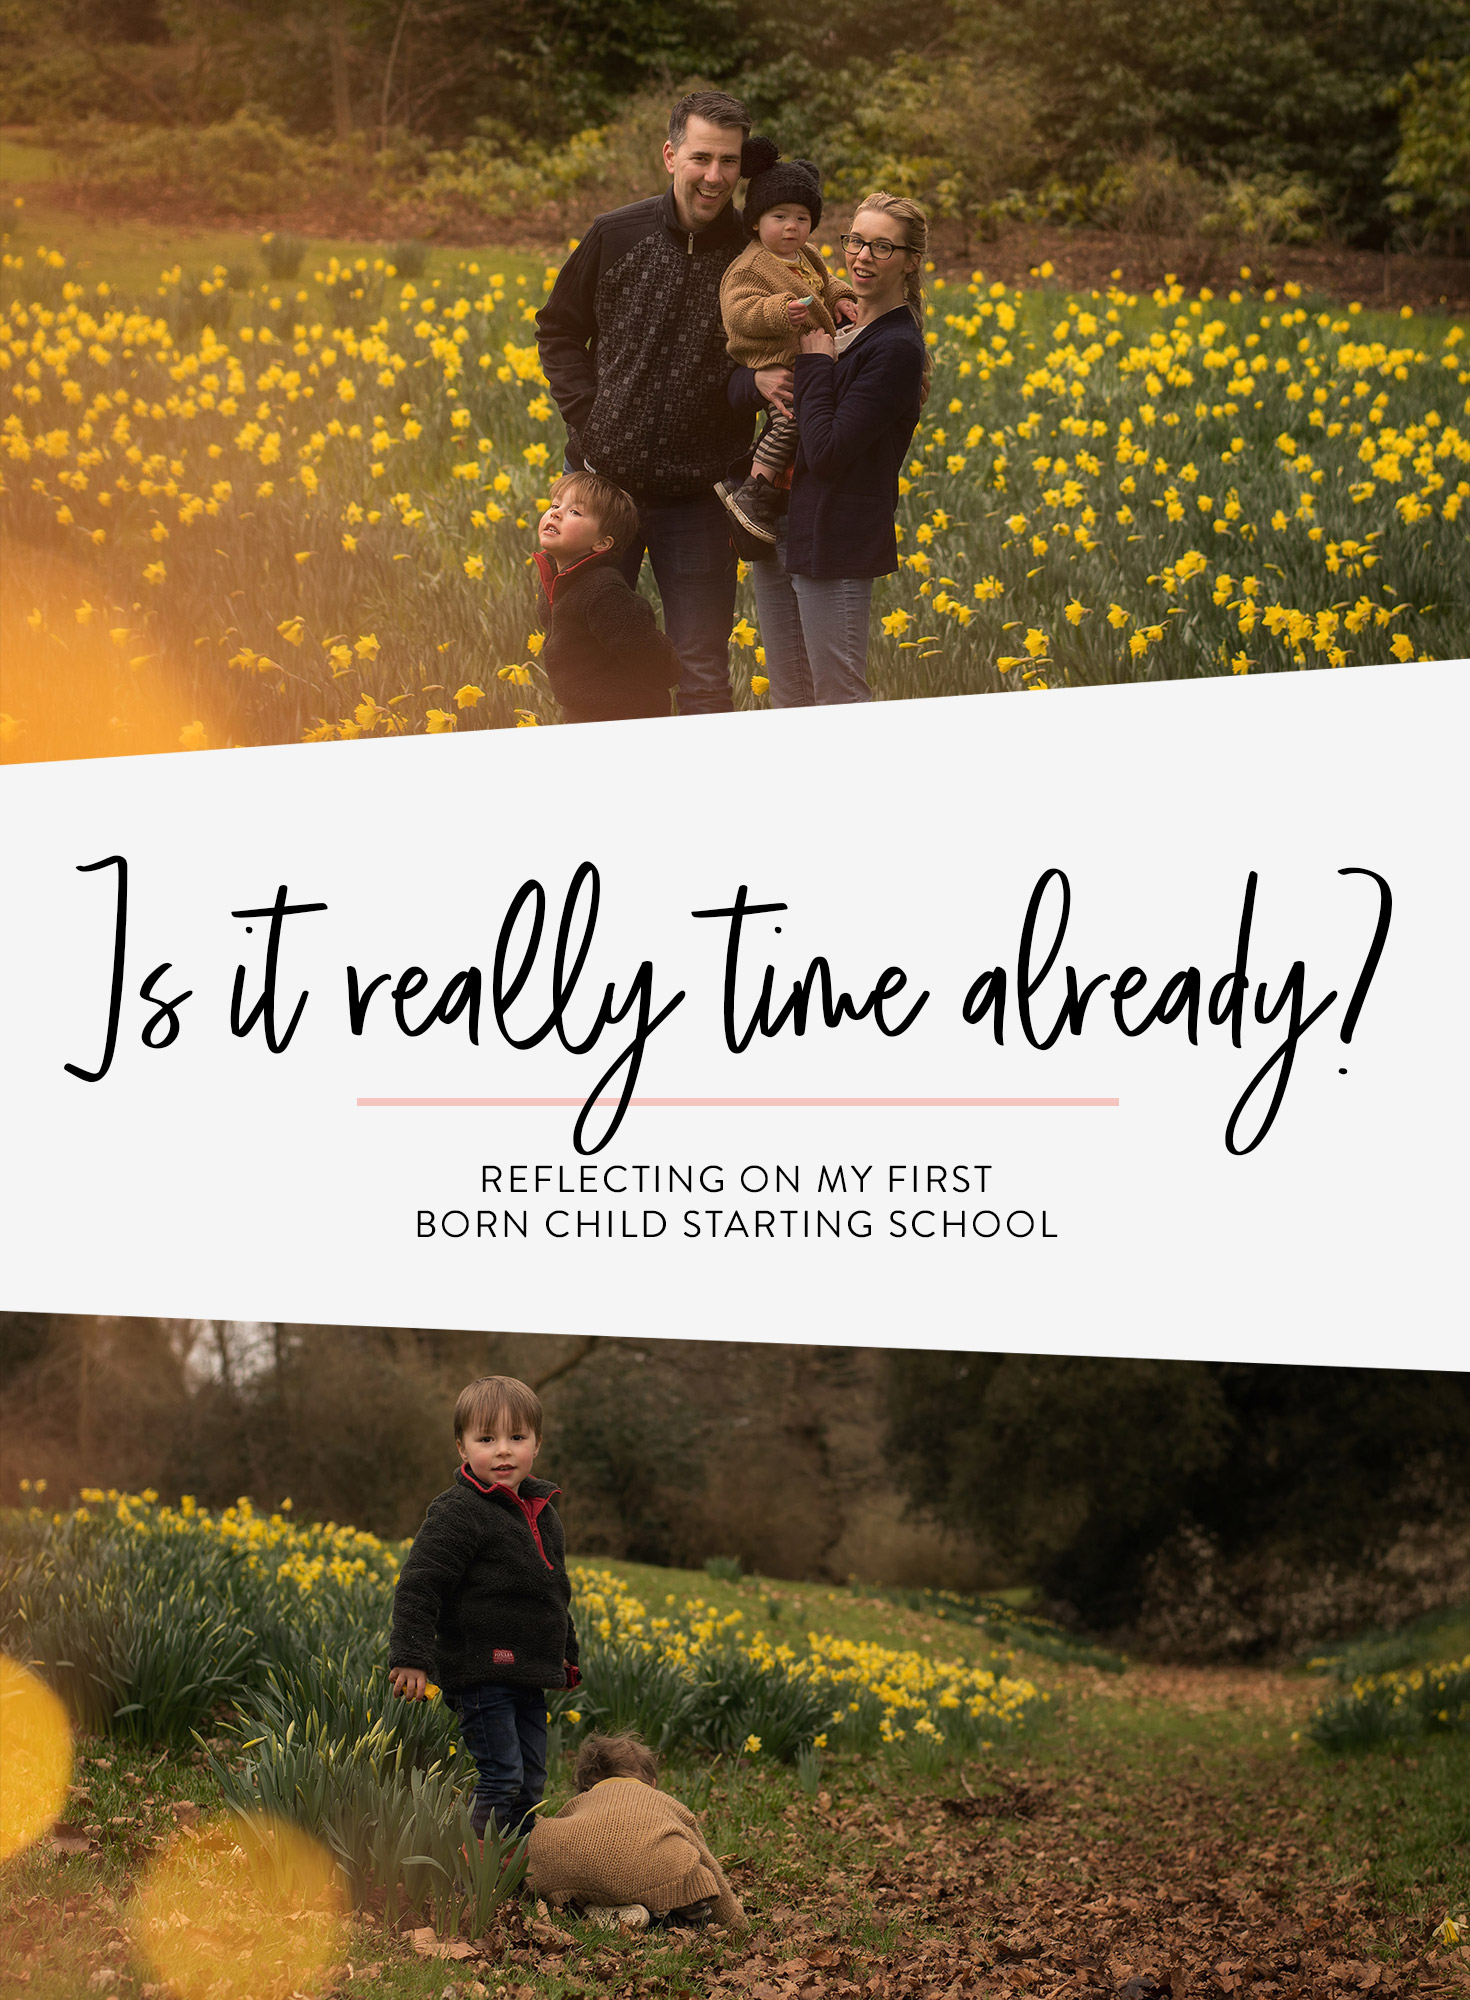 A photo diary capturing the real, honest moments of our everyday adventures as a family